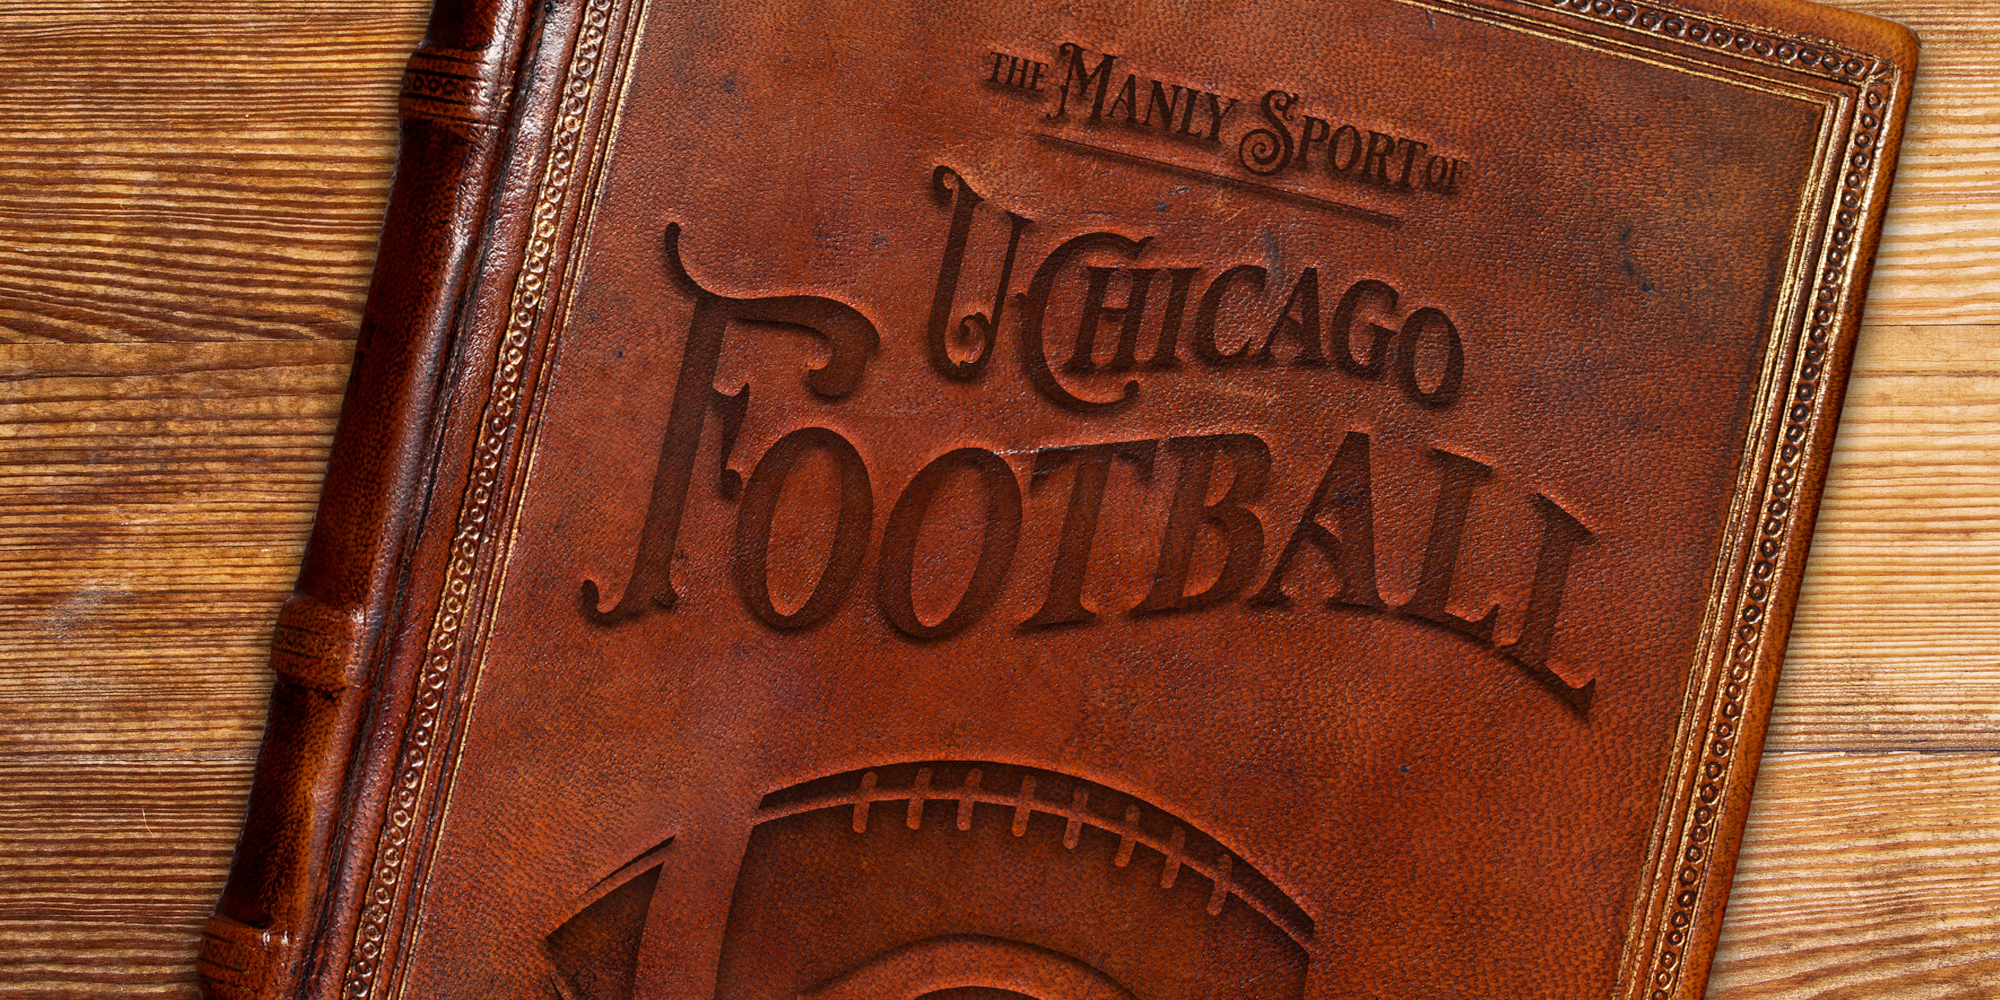 The Manly Sport of UChicago Football